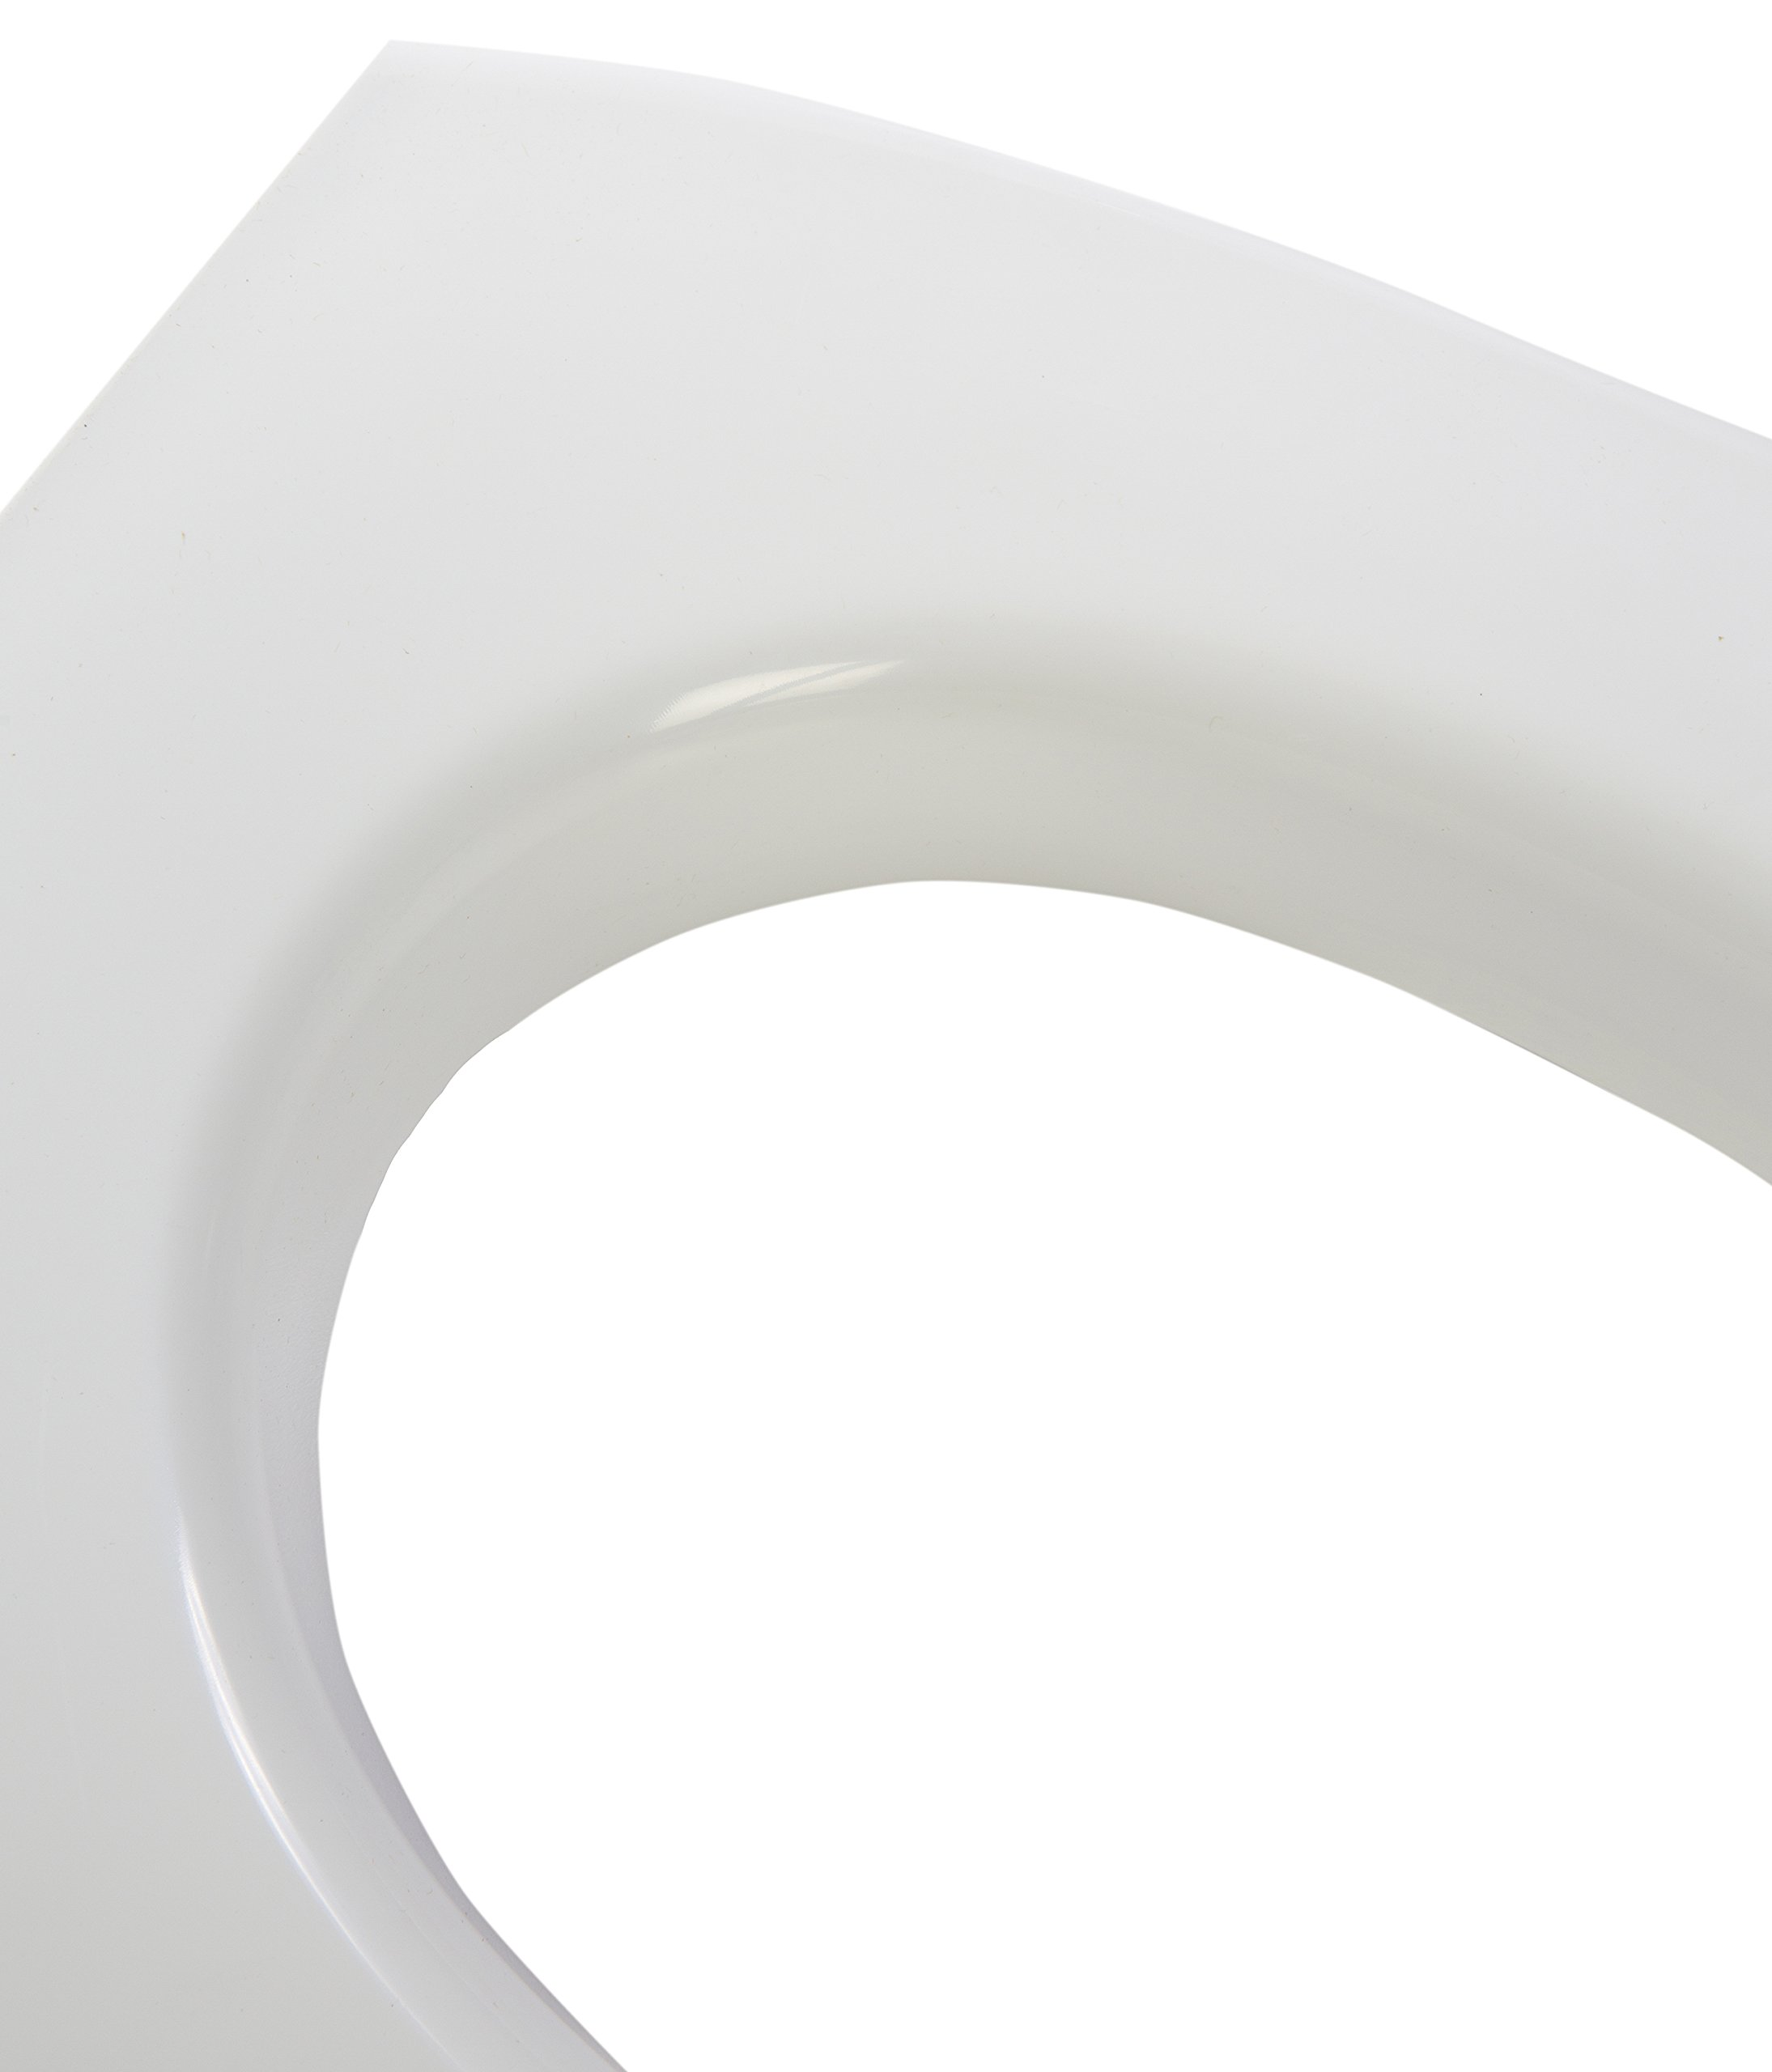 Big John Products 7-W Classic Toilet Seat, White by Big John Products